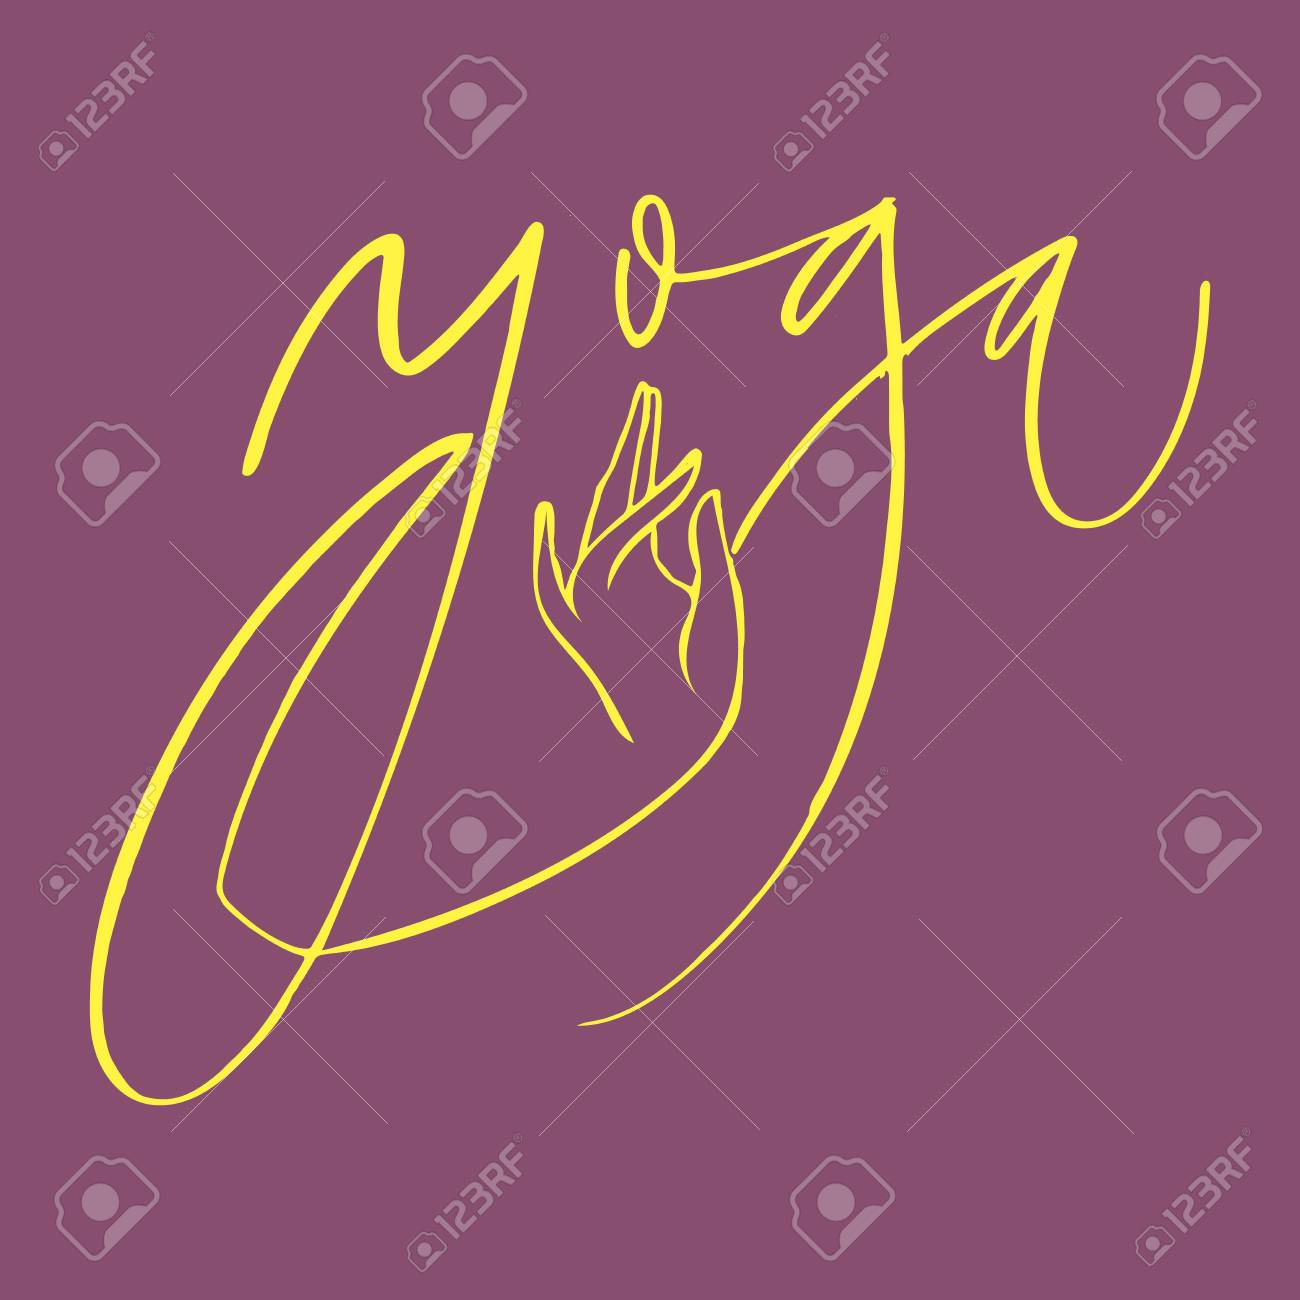 Hand Lettering Yoga Logo Letters Can Be Printed On Greeting